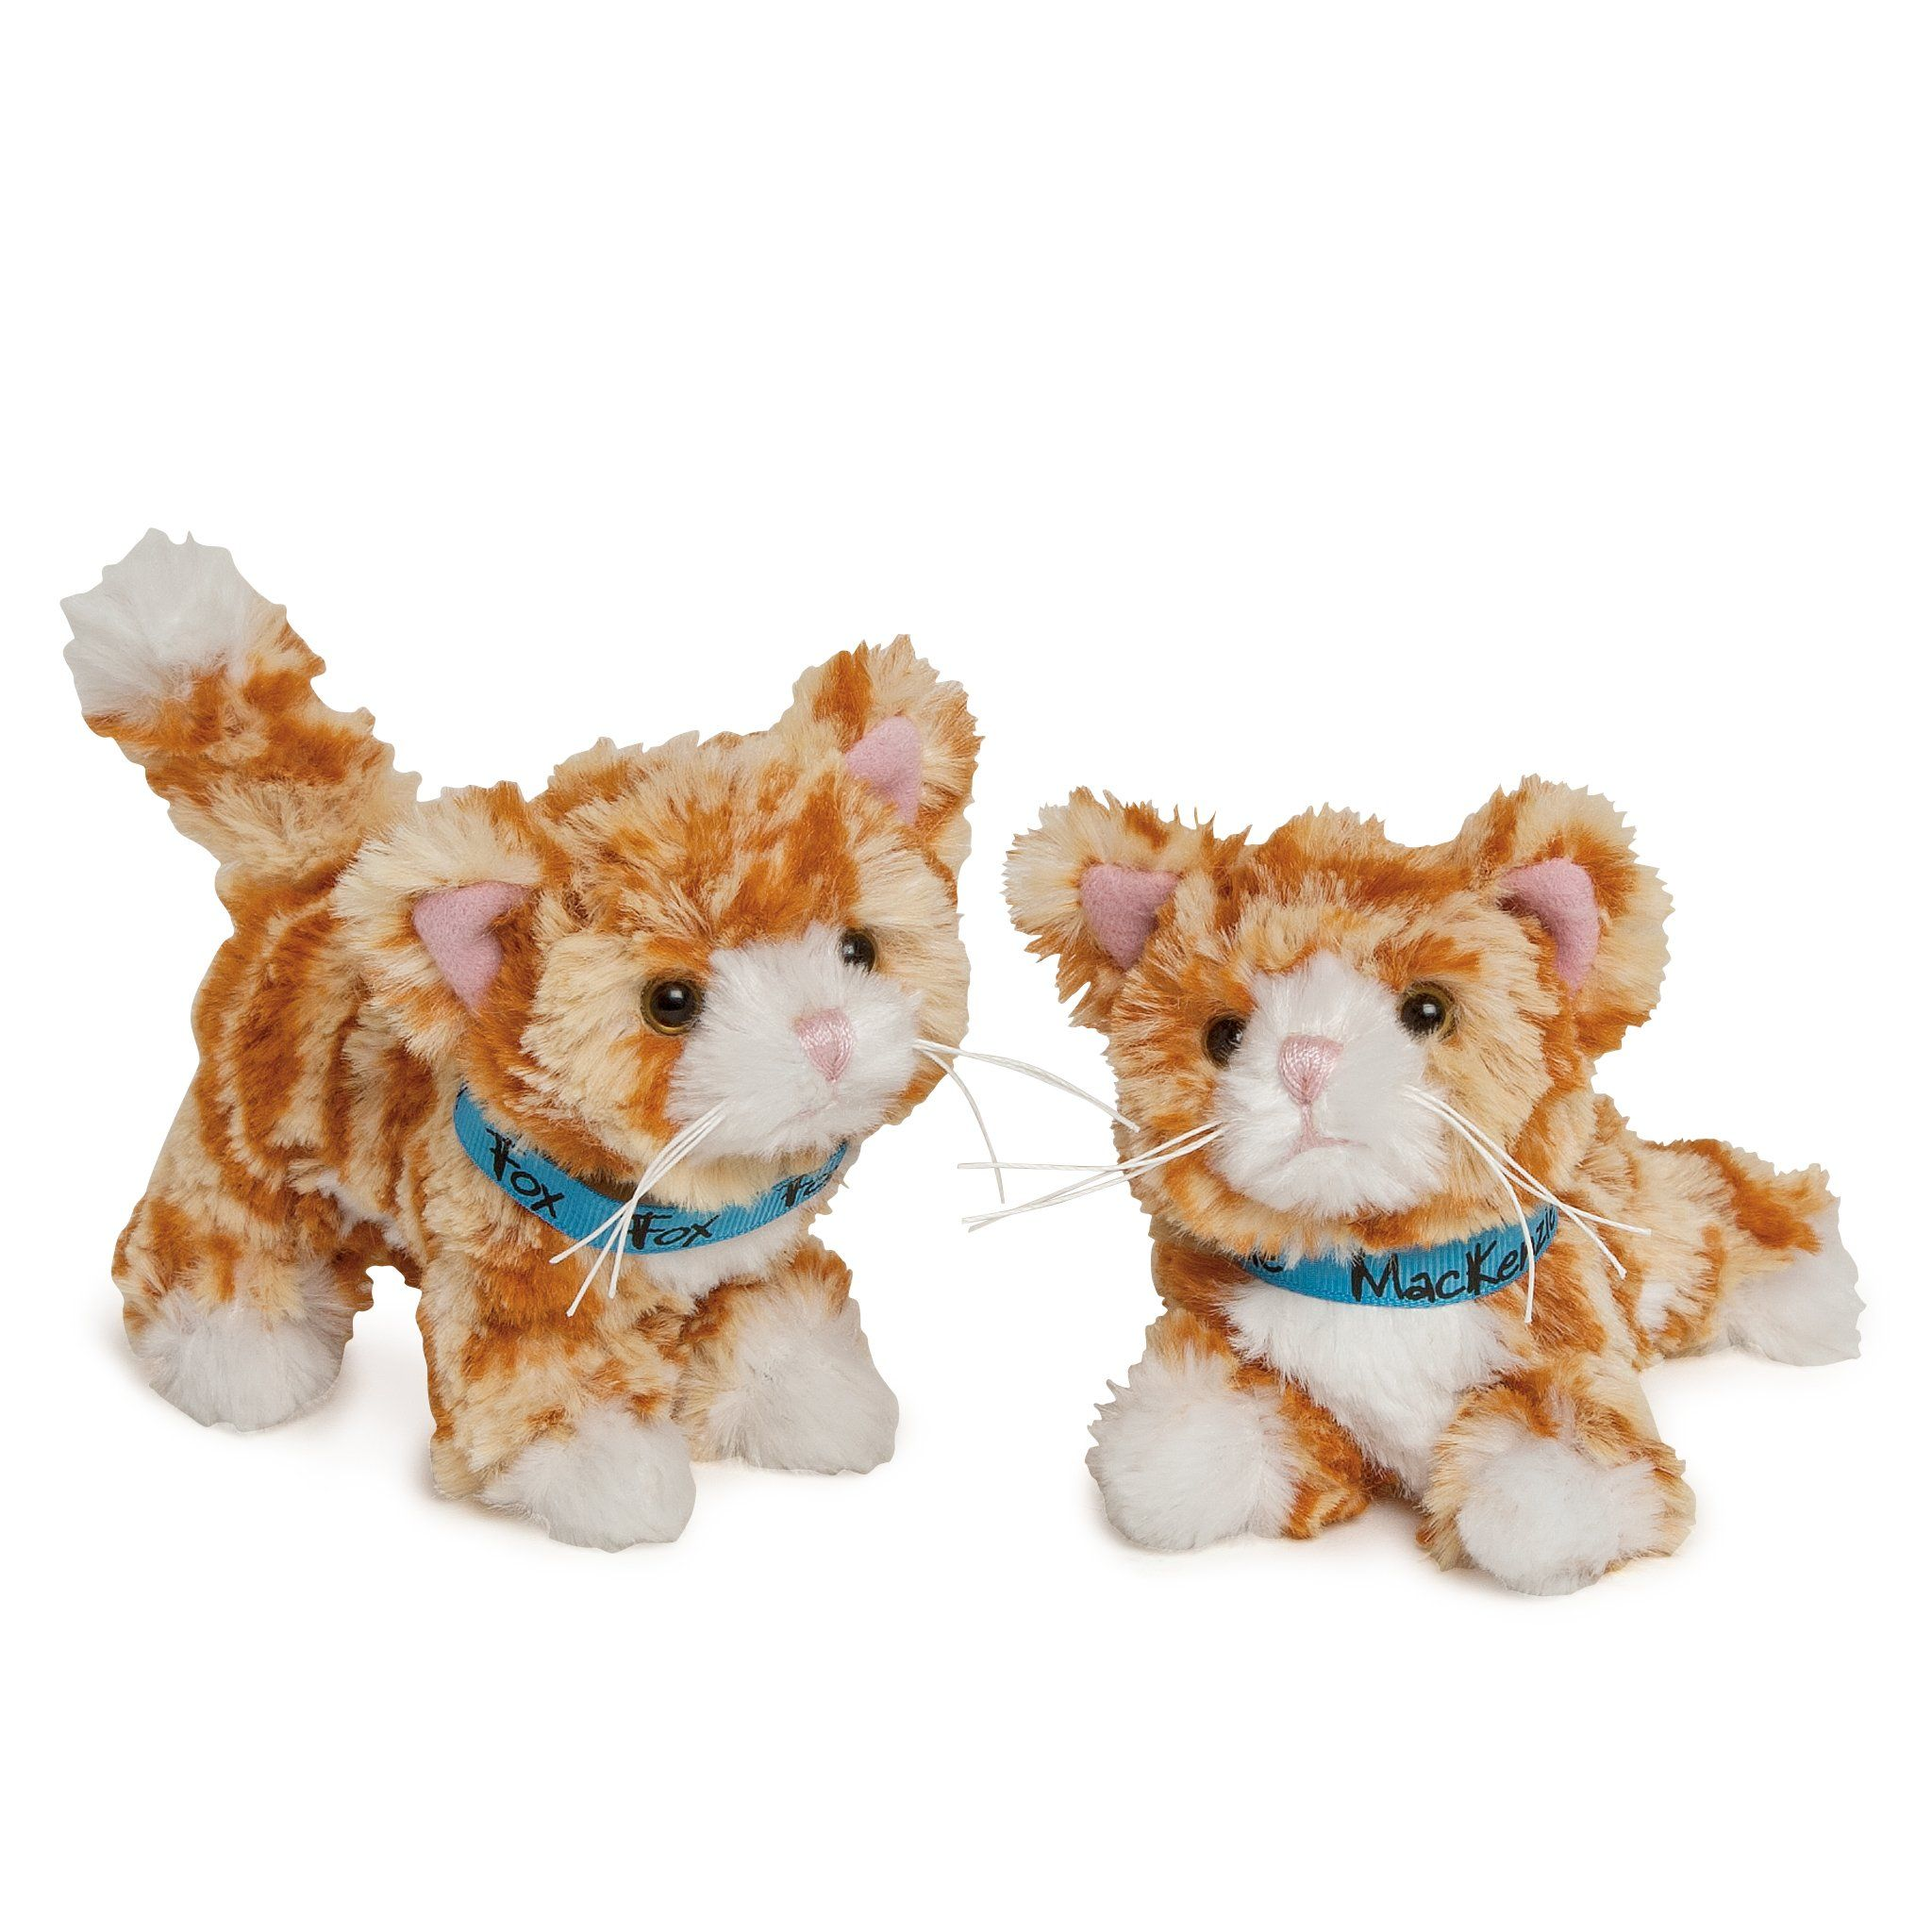 Two orange tabby cats Mackezie and Fox with blue collars for all 18 inch dolls.